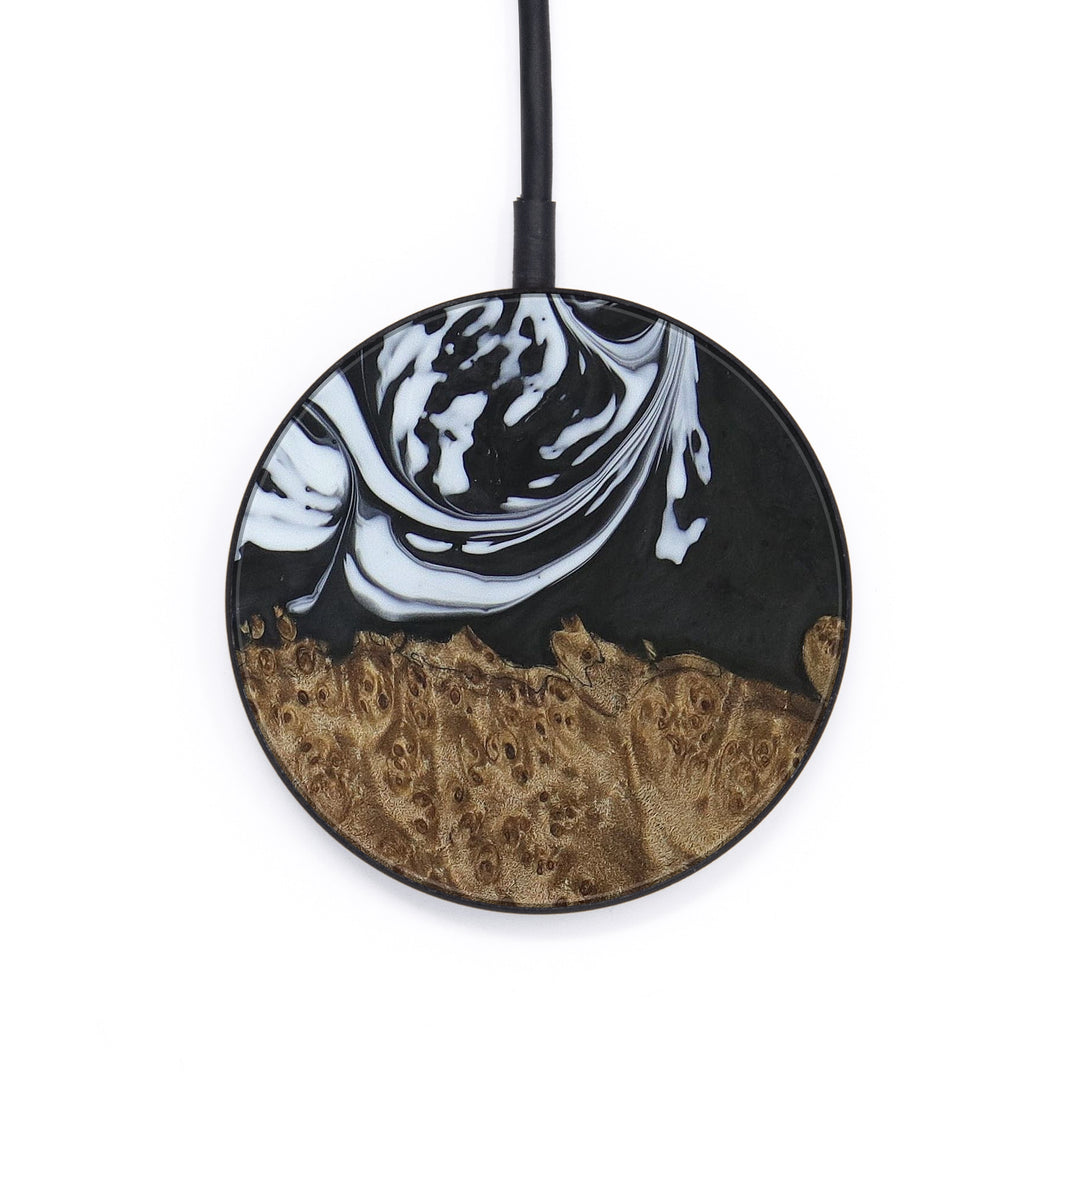 Circle Wood+Resin Wireless Charger - Ottcsr (Black & White, 405891)